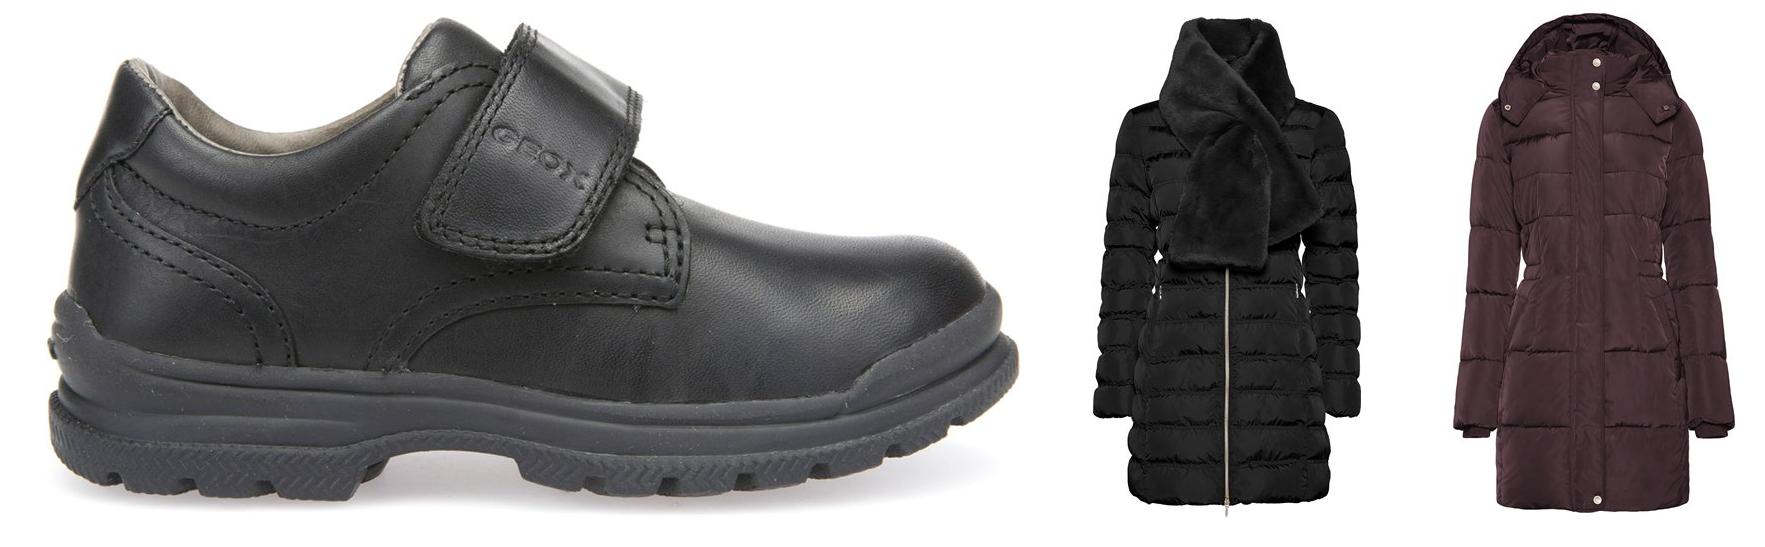 382604d13e8 Take an Extra 10% Off Sitewide at Geox (Shoes, Boots, Coats and More) +  Free Shipping!